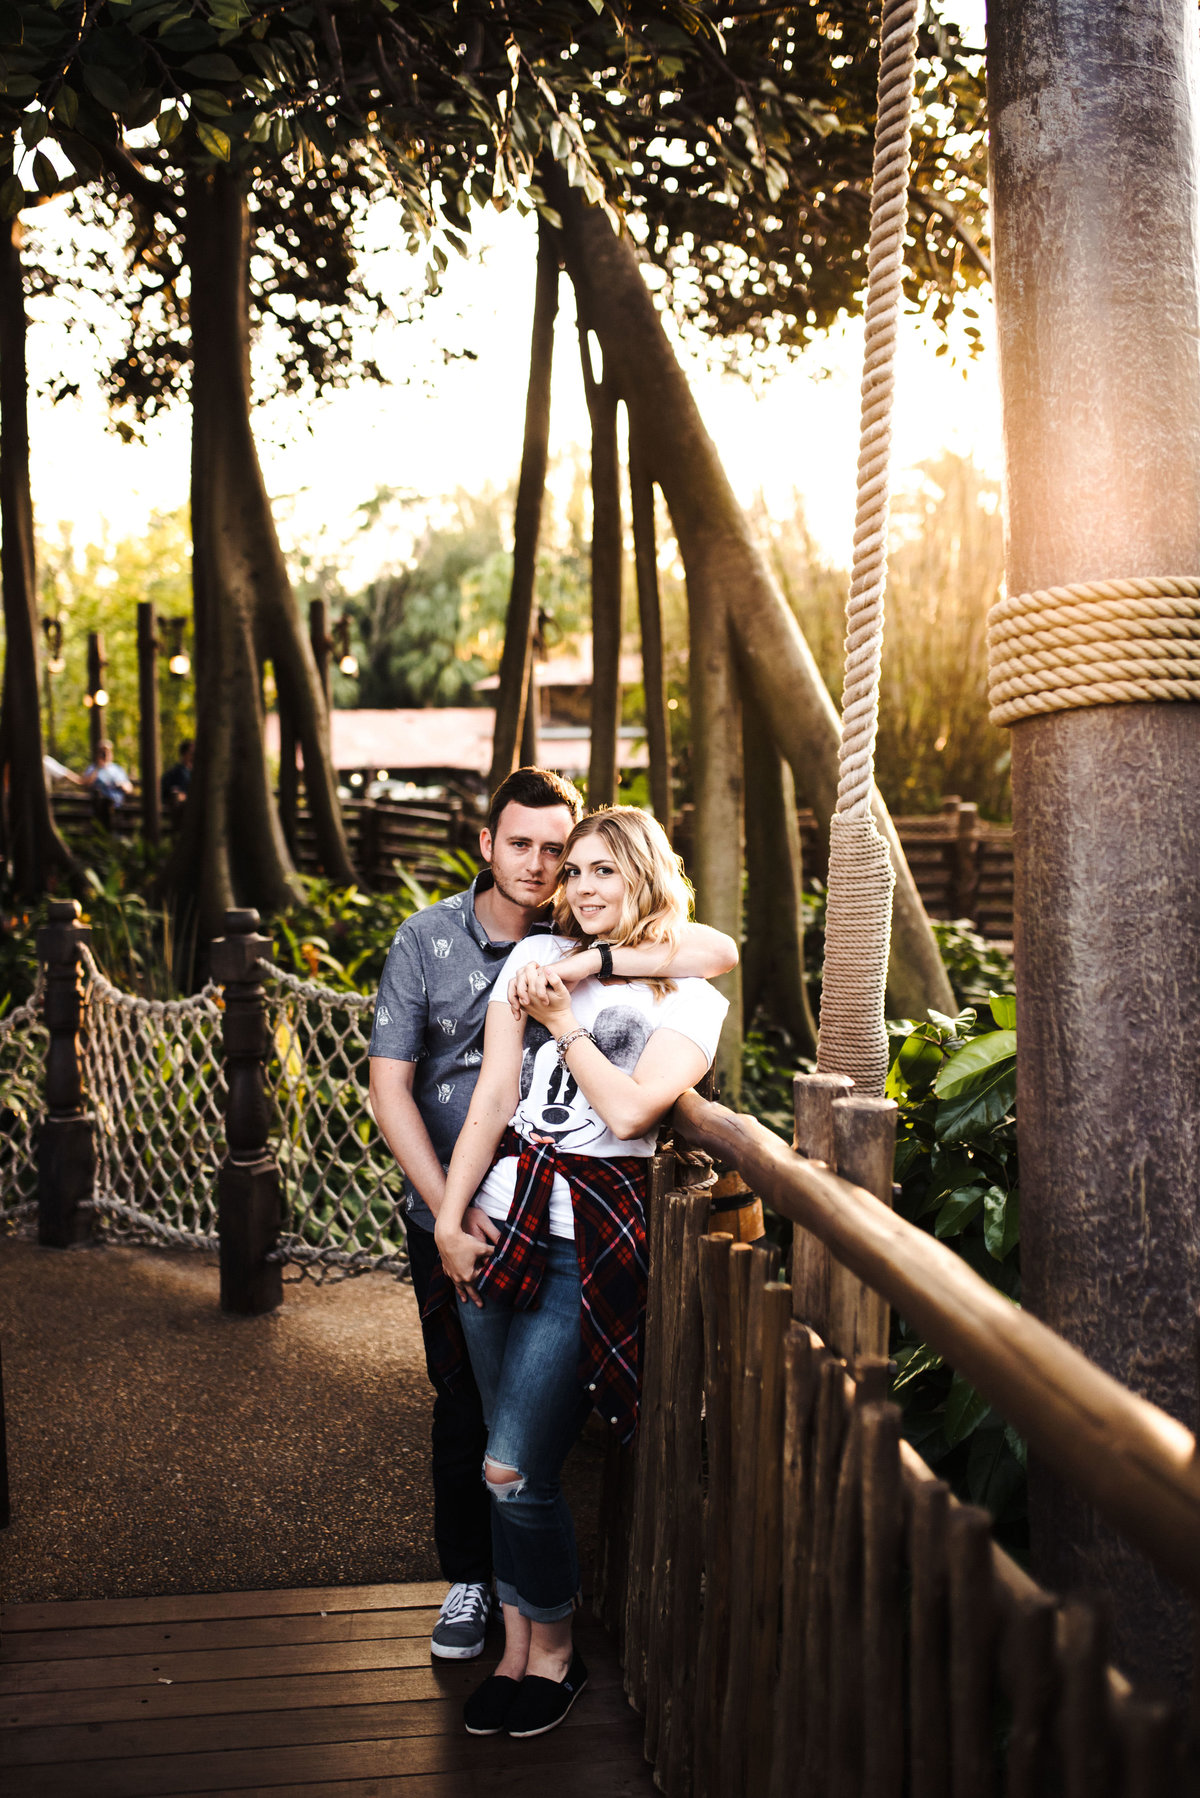 Ally & Brett's Disney Engagement Session (219 of 243)